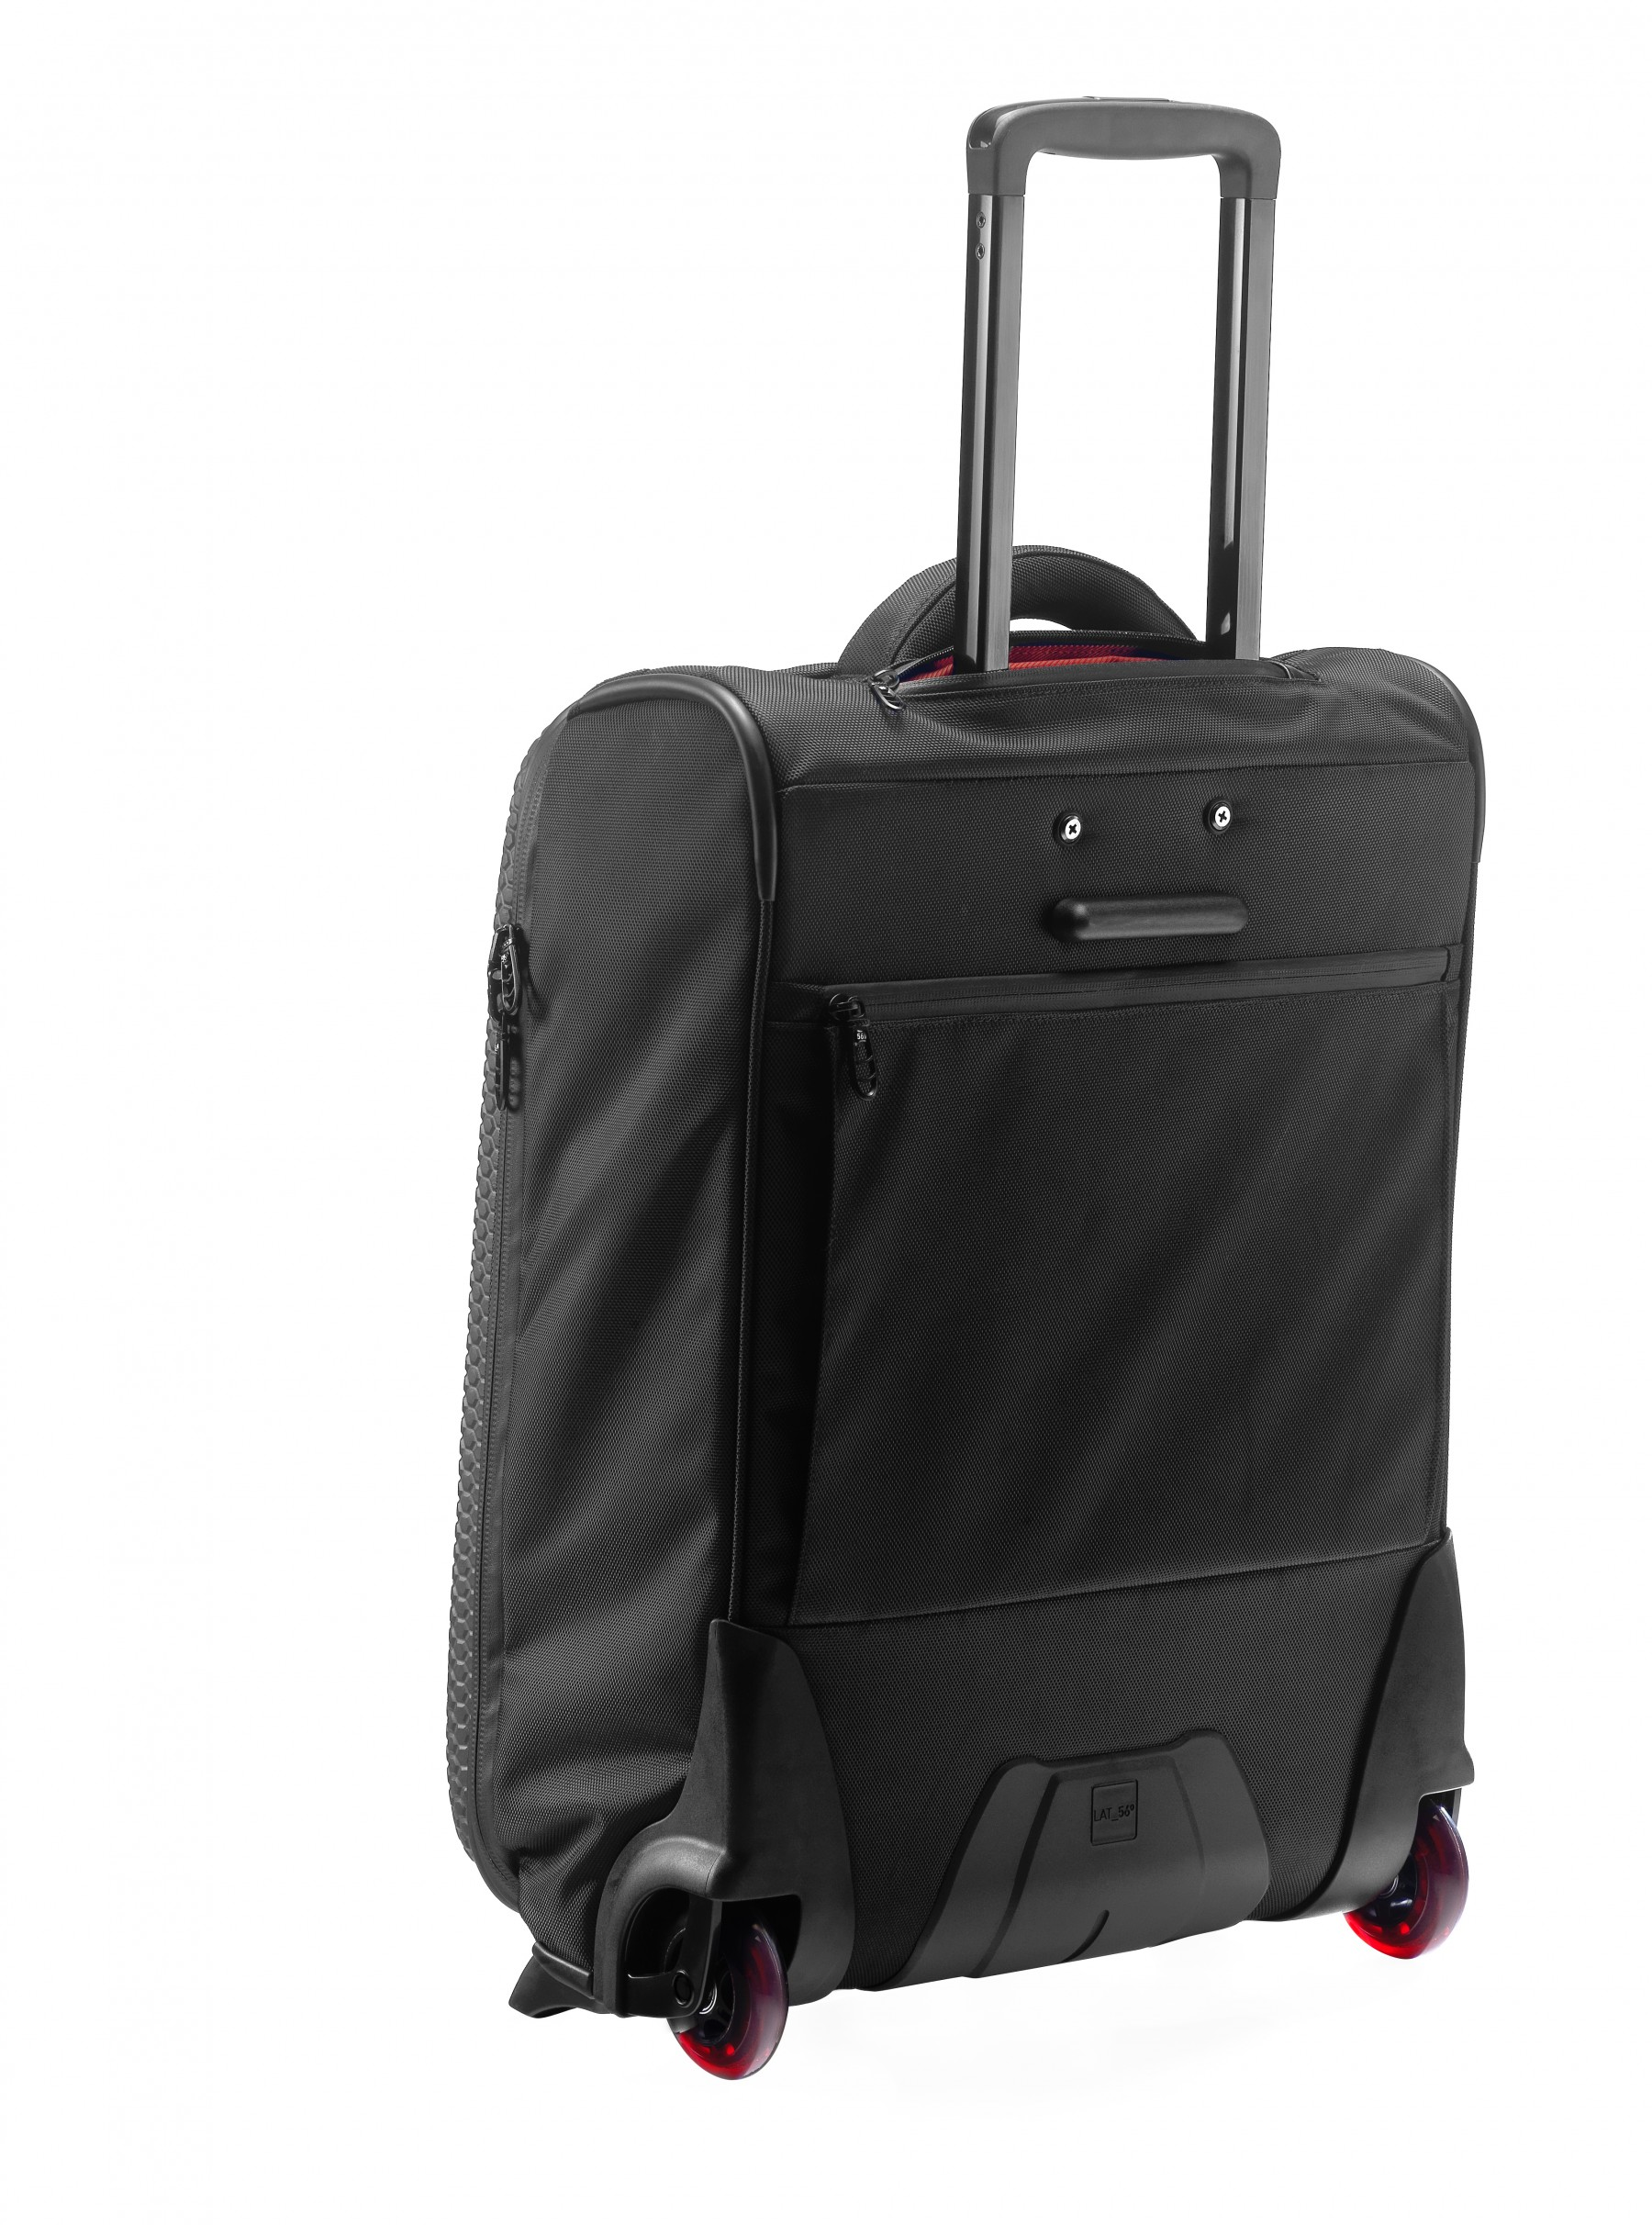 RW_01 - ROAD WARRIOR Carry-On Suitcase Cabin Bag (2-Wheel) with ...